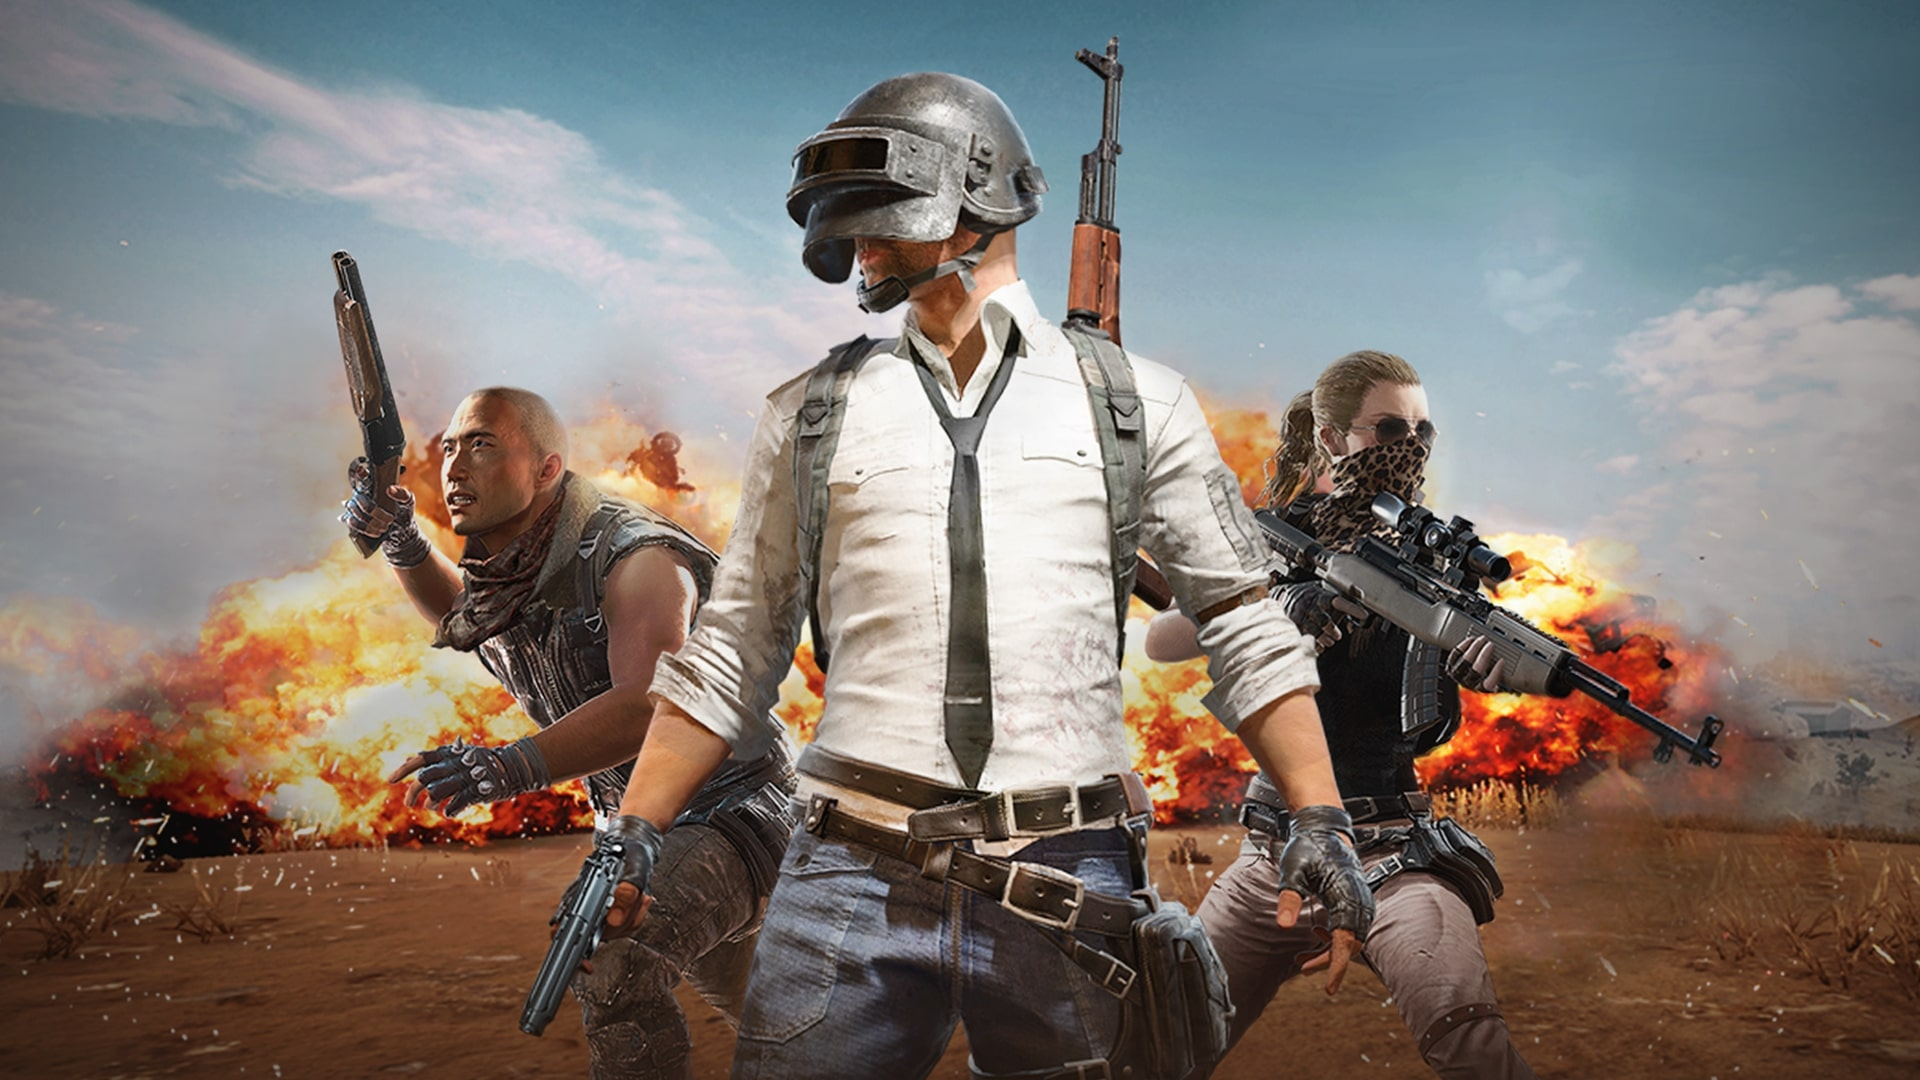 Get PUBG on PS4 at a bargain price with this 12-month